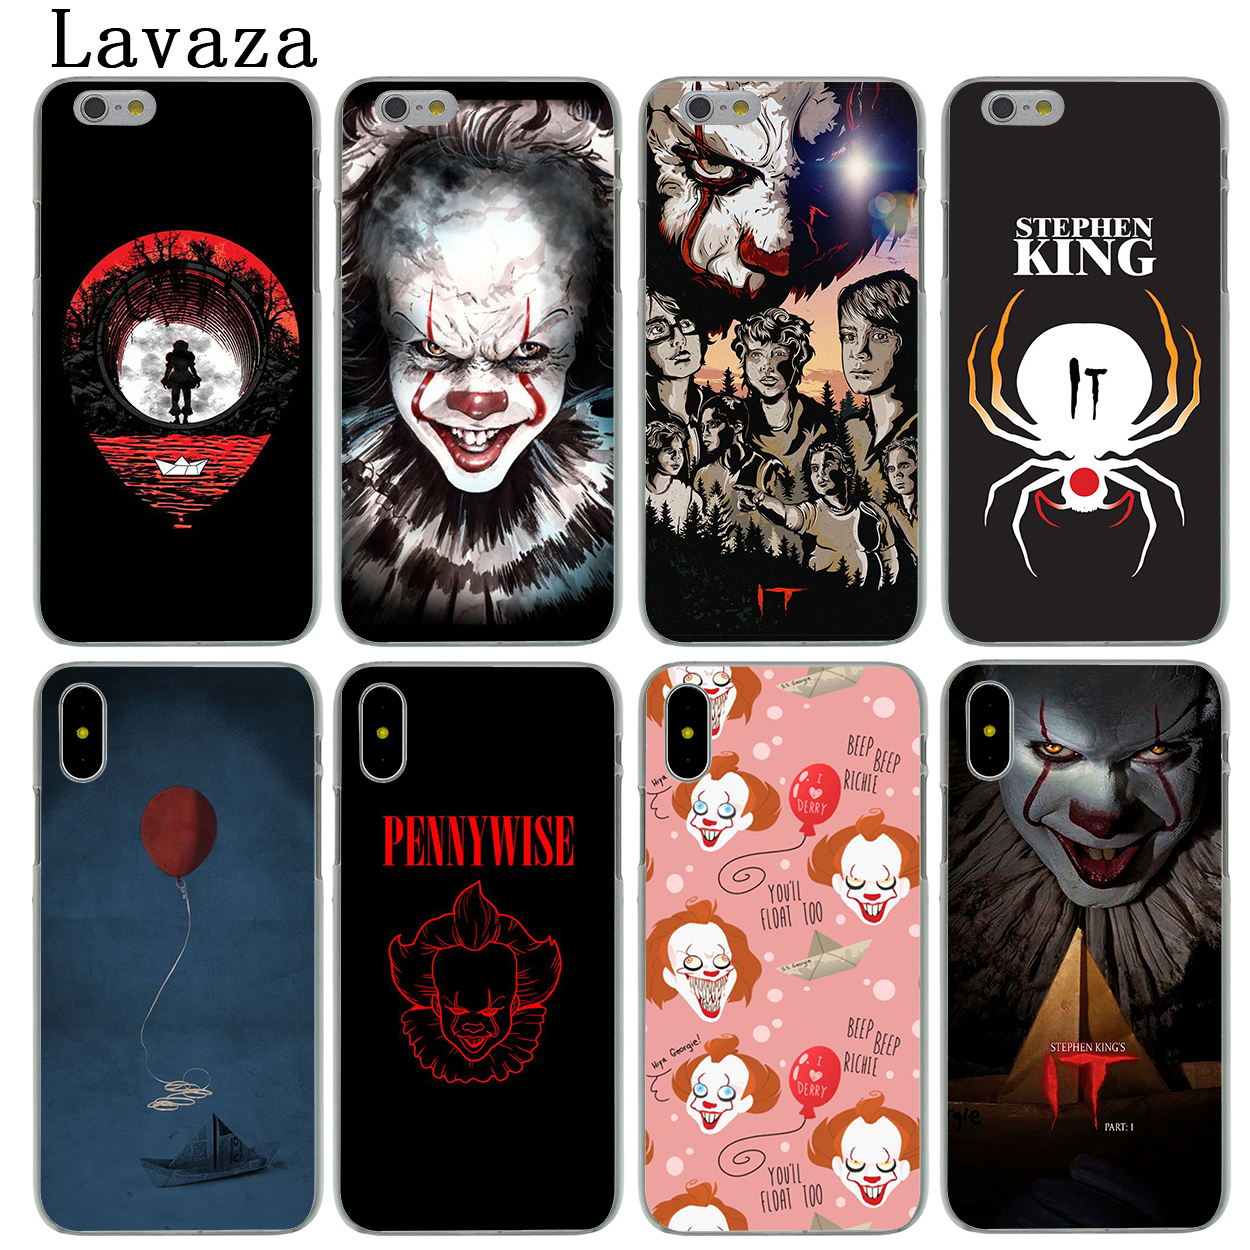 Lavaza Stephen Kings It Hard Fashion Phone Skin Shell Case for Apple iPhone X 10 8 7 6 6S Plus 5 5S SE 5C 4 4S Cover